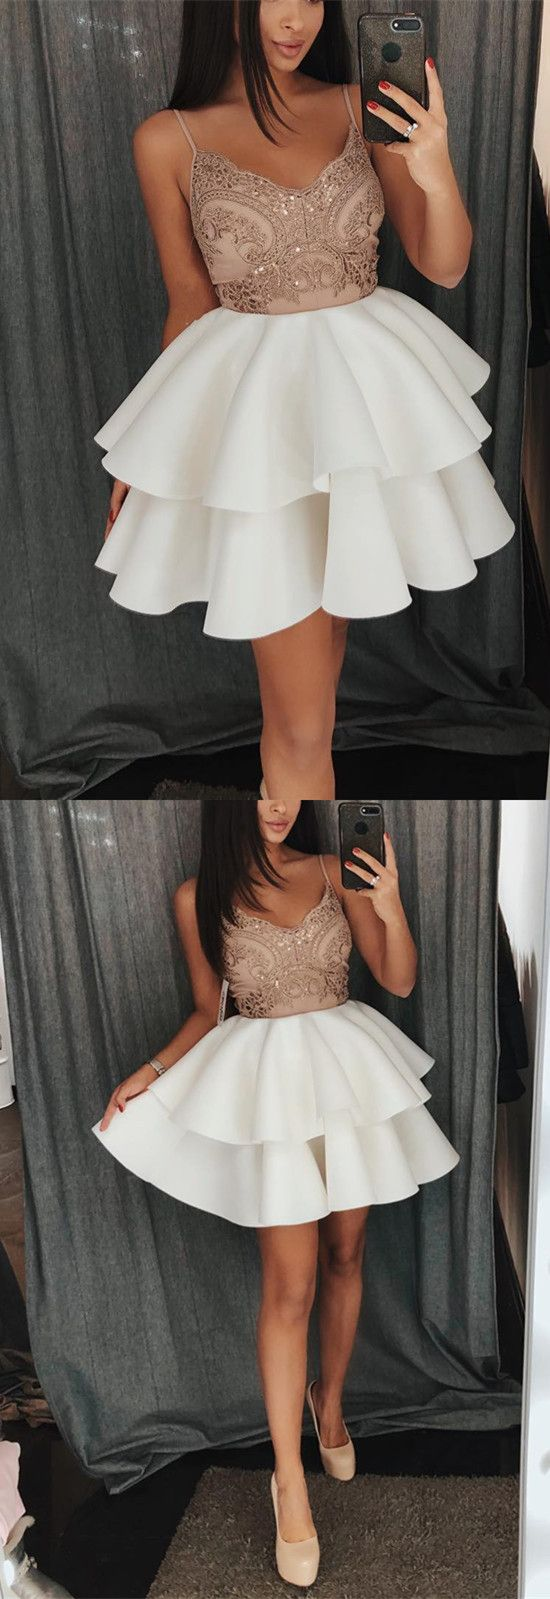 Short White Ruffles Homecoming Dresses Lace Appliques Prom Dress For Cocktail Pa…